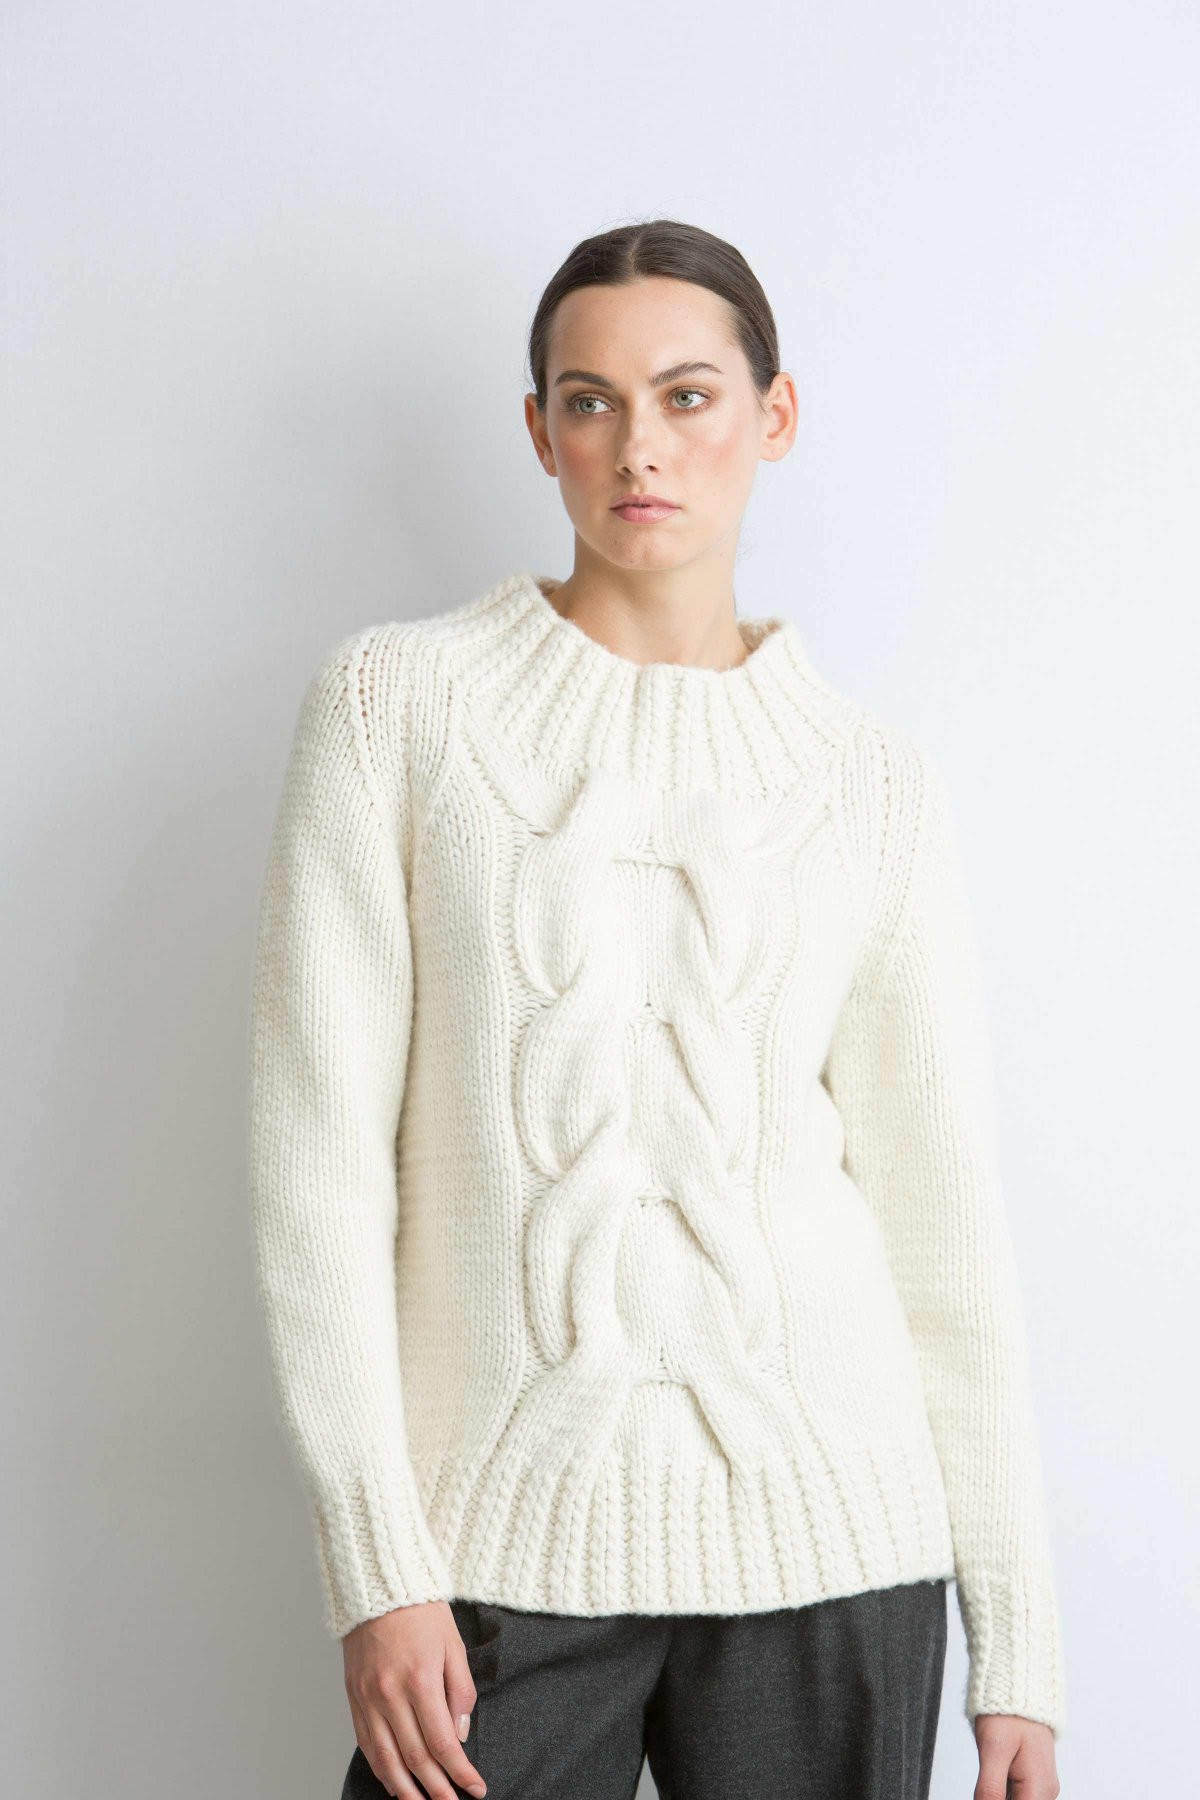 Knit Cardigan Lovely Cashmere Cable Knit Sweater Baggage Clothing Of Delightful 41 Ideas Knit Cardigan